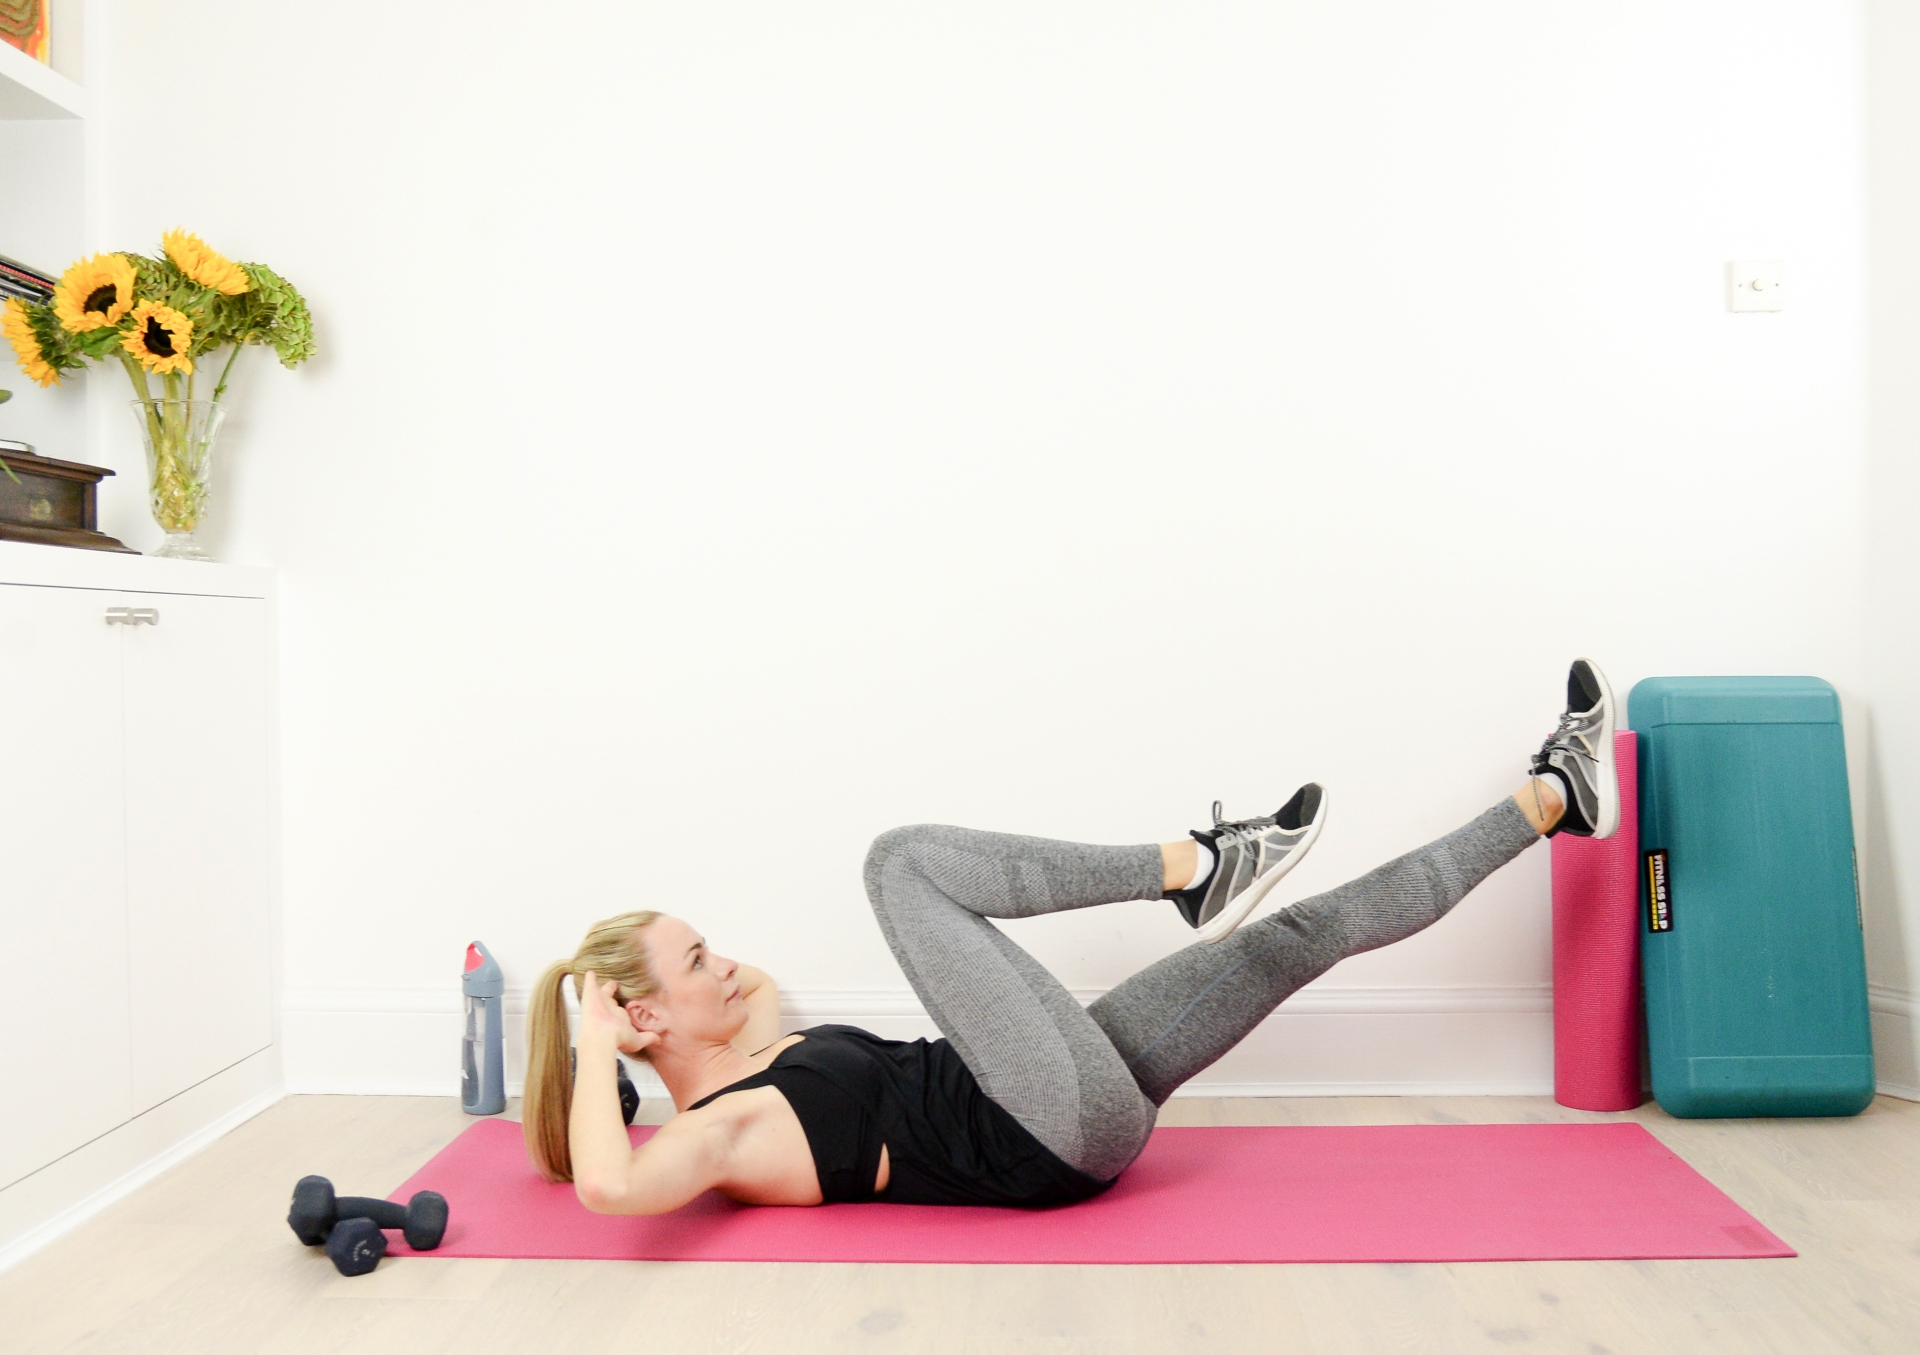 The Best Full Body Workout For Busy Moms Baby2body Blog Legs Circuit Bodyweight Leg Pedal Your As If You Were Riding A Bicycle Bringing Opposite Elbow To Knee Every Time In Right Left And